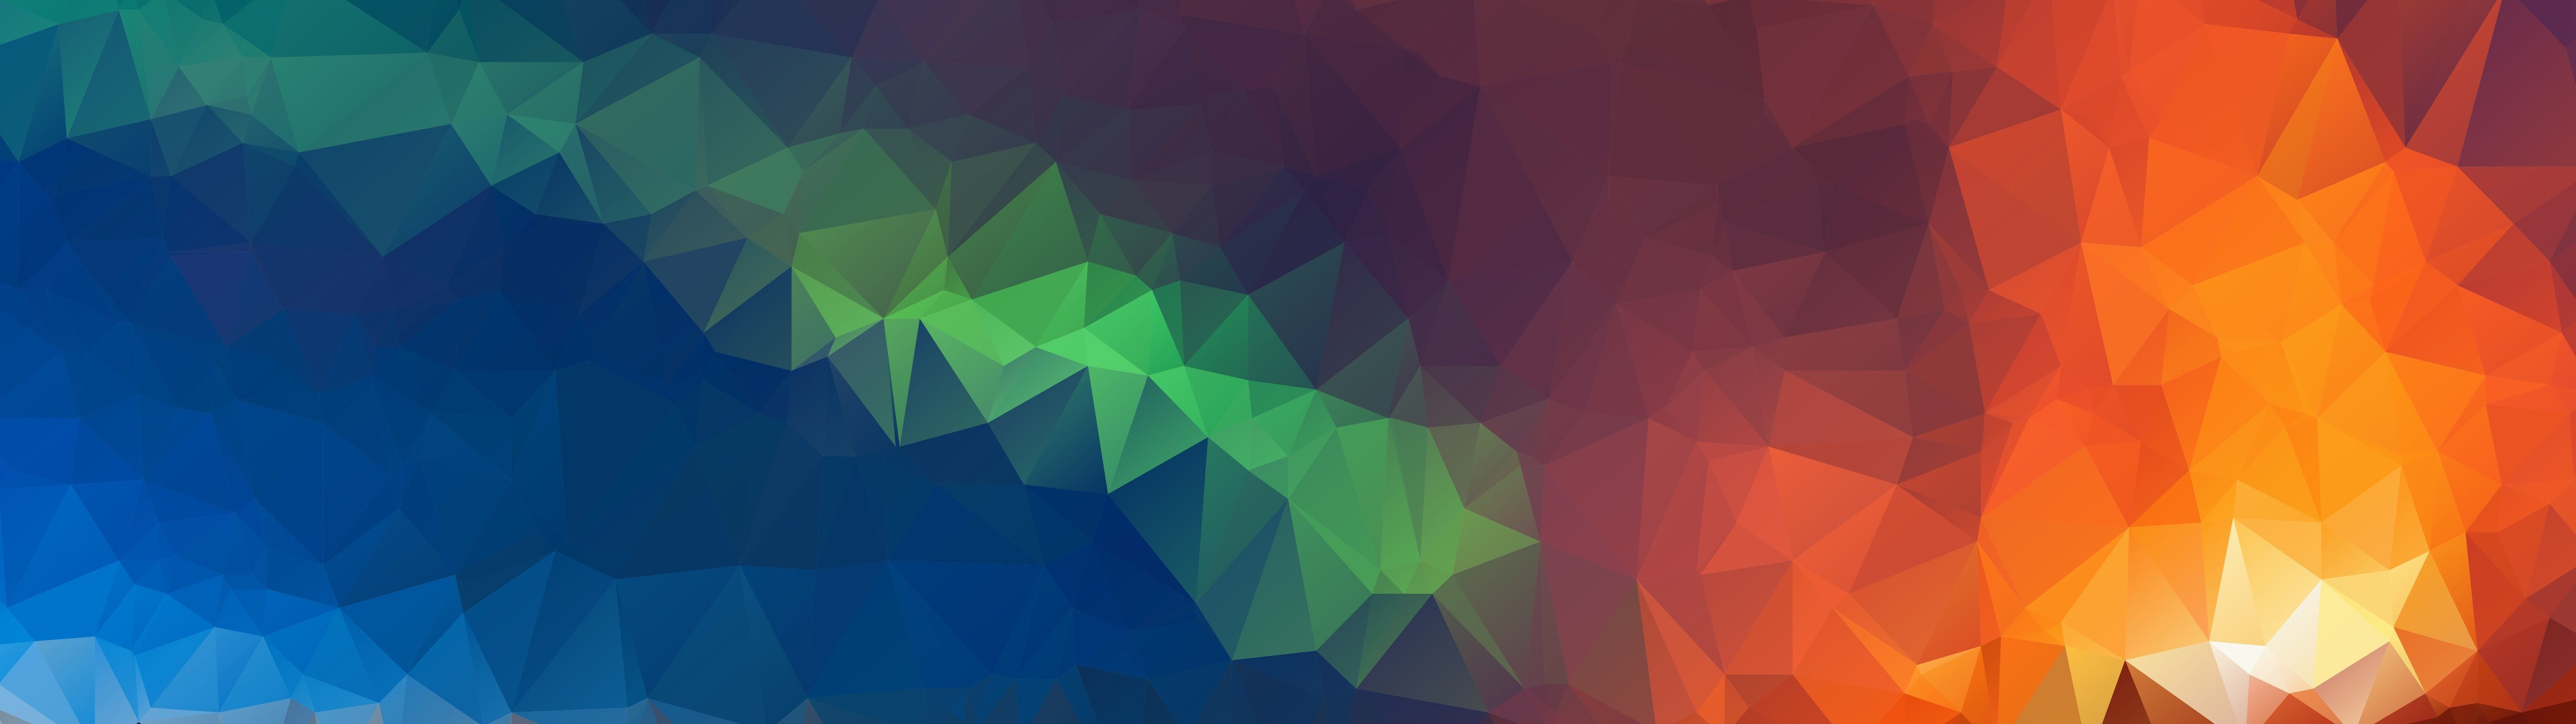 7680x2160 Abstract Colorful Polygon 8K 7680x4320 Wallpaper #31